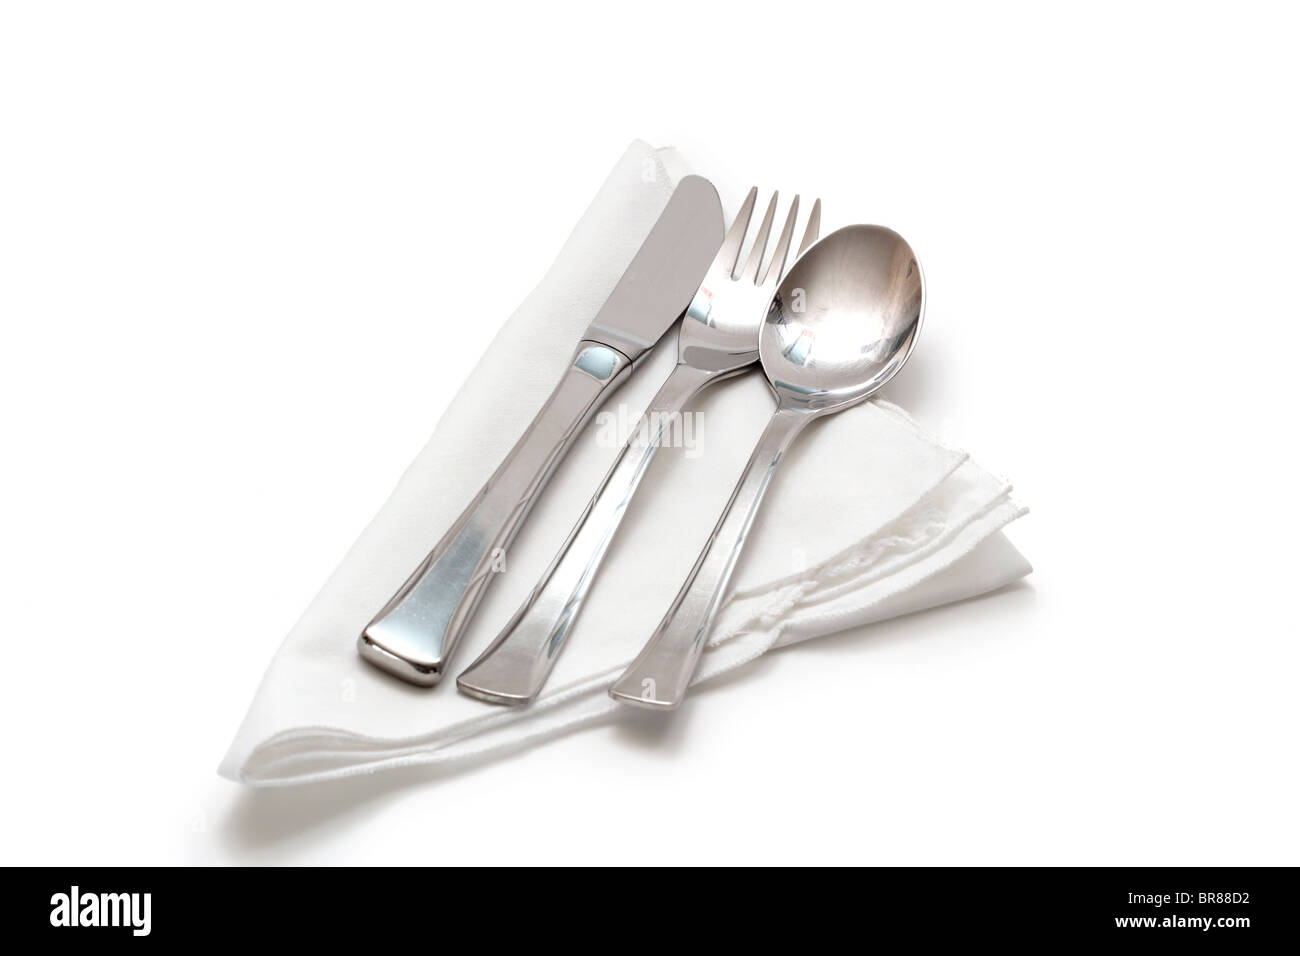 Knife, fork, and spoon on a white cotton napkin - Stock Image